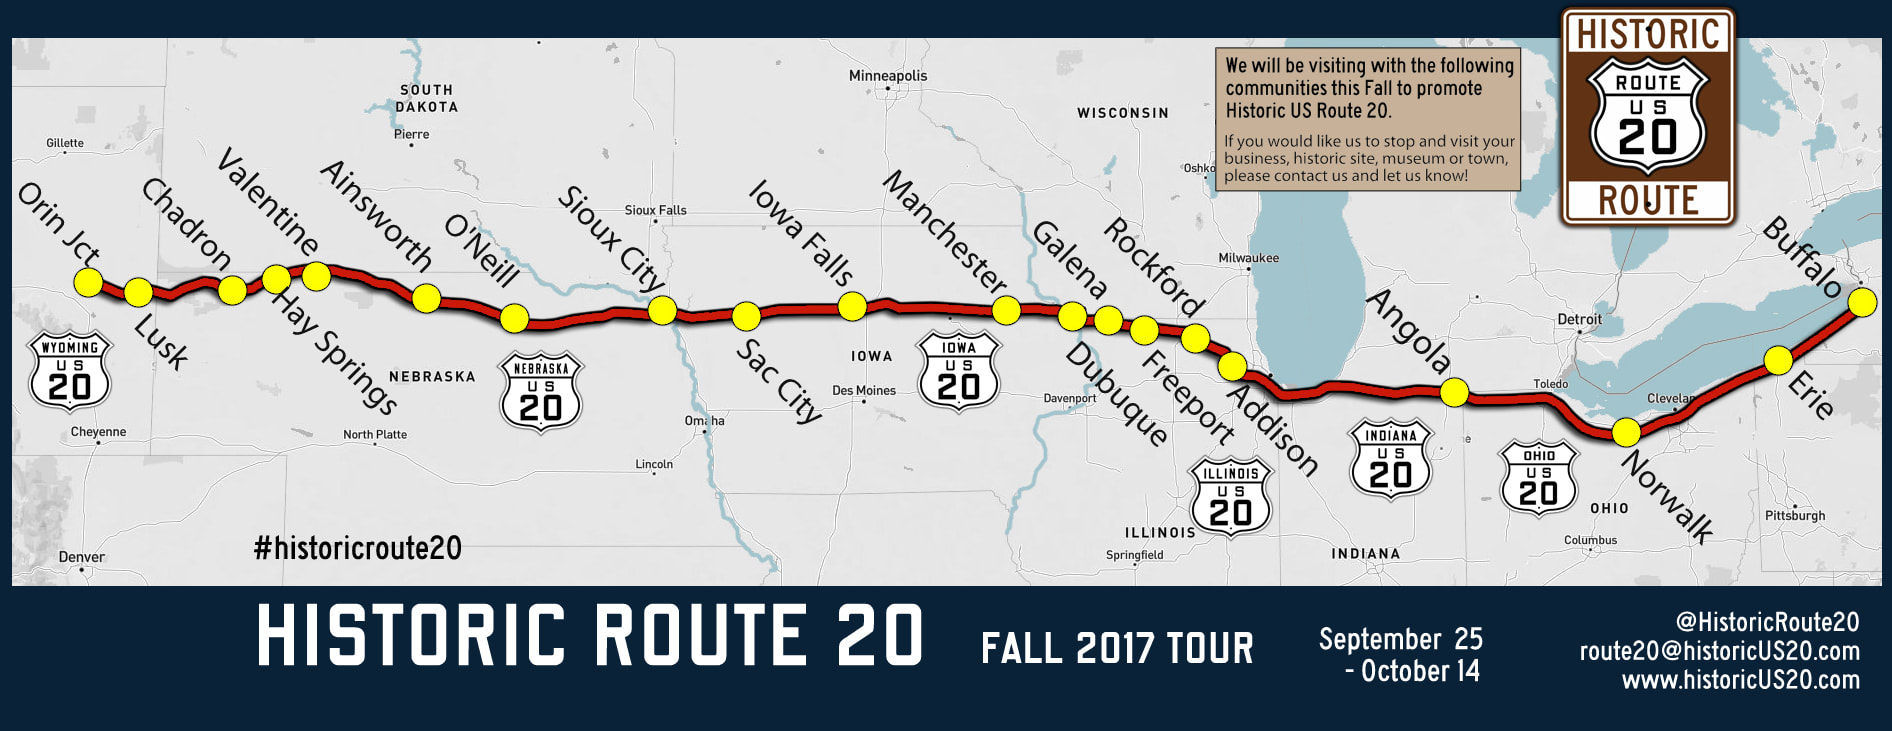 a nonprofit organization hopes to designate the original 1926 alignment of highway 20 in iowa between dubuque and sioux city and is calling on local